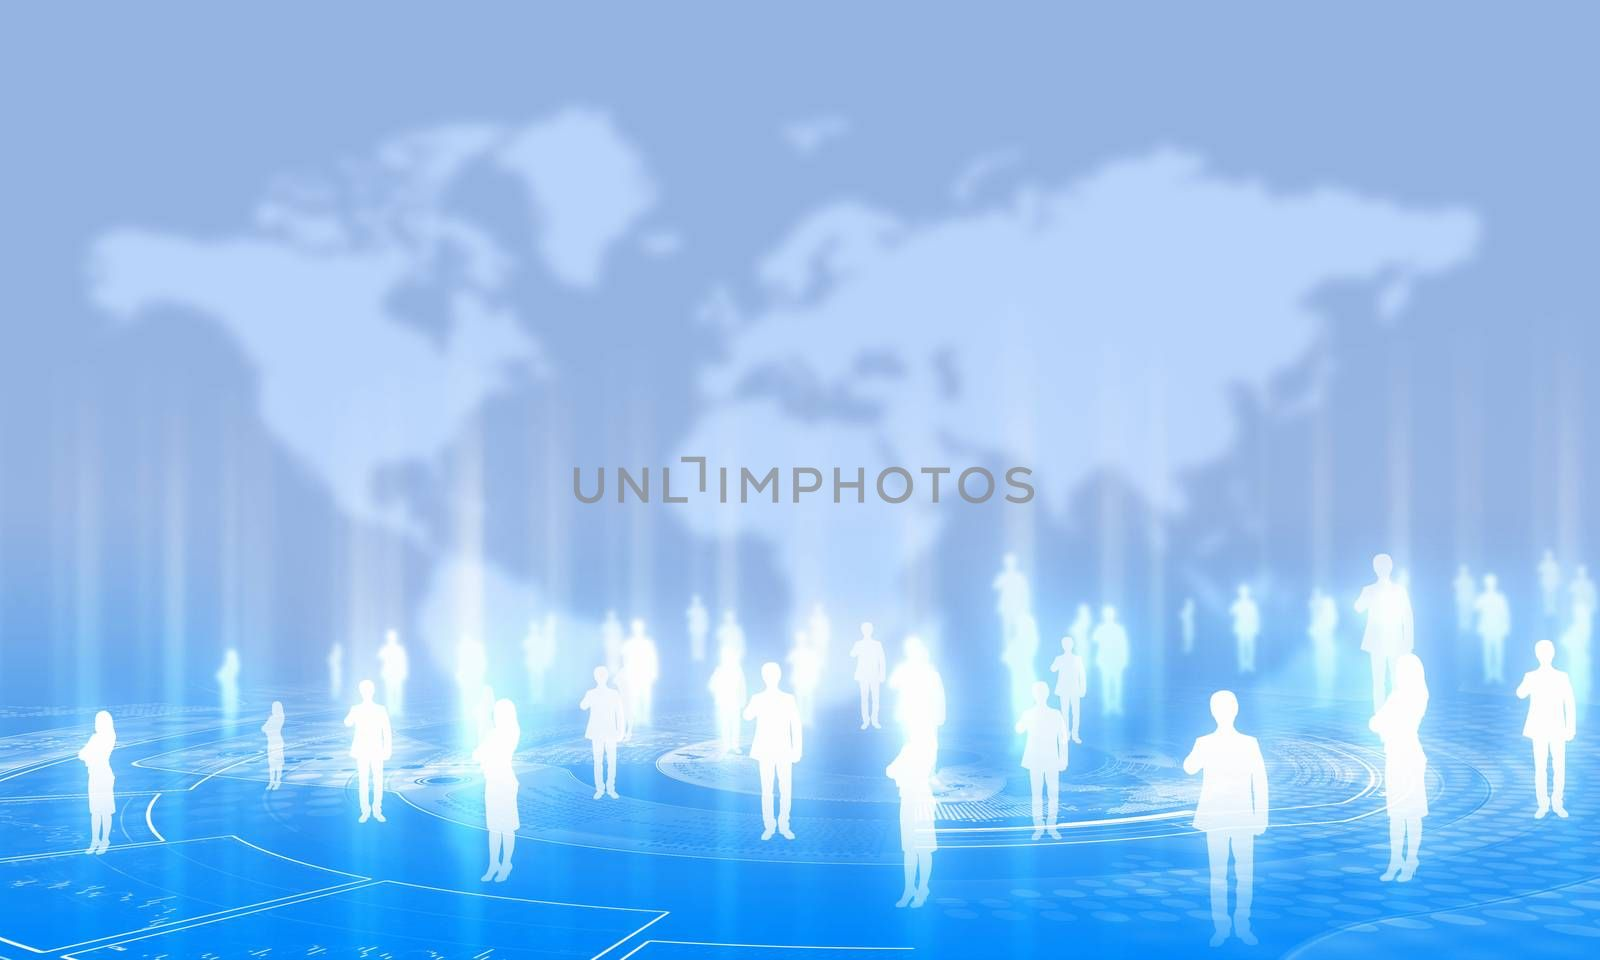 Background media image with icons. Social nets and communication